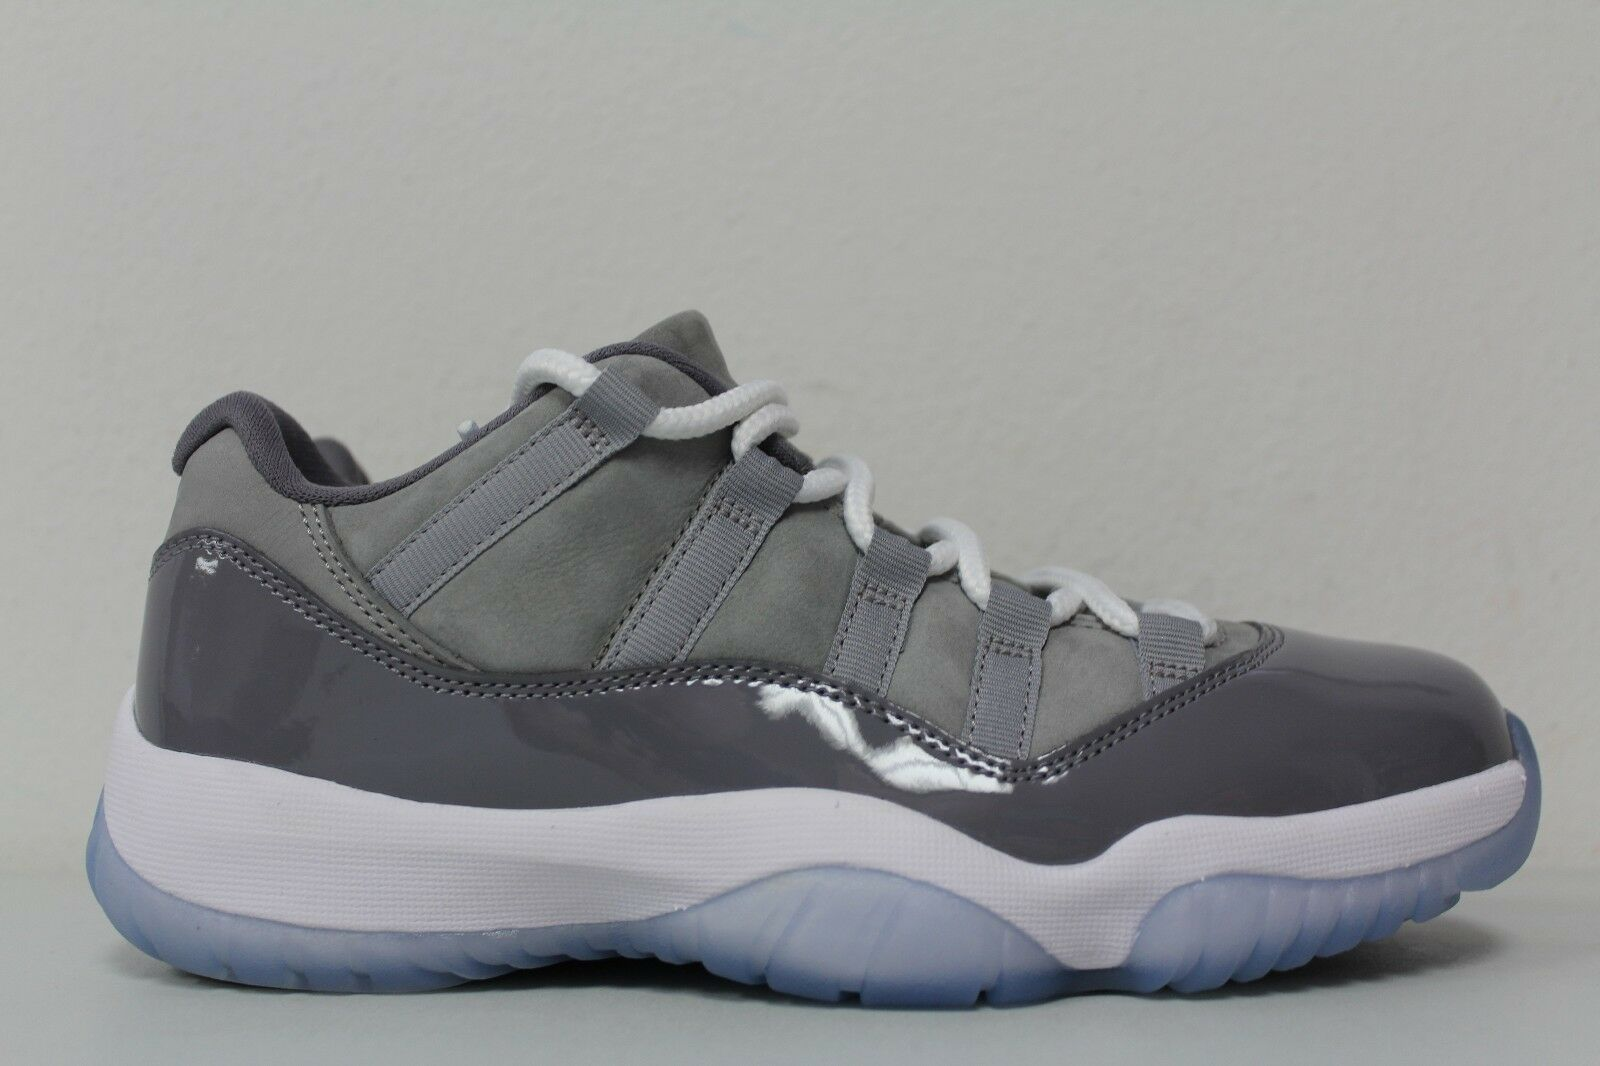 a8b67487538d3 Nike Mens Air Jordan 11 Retro Low Size 7 Cool Grey 528895-003 for ...